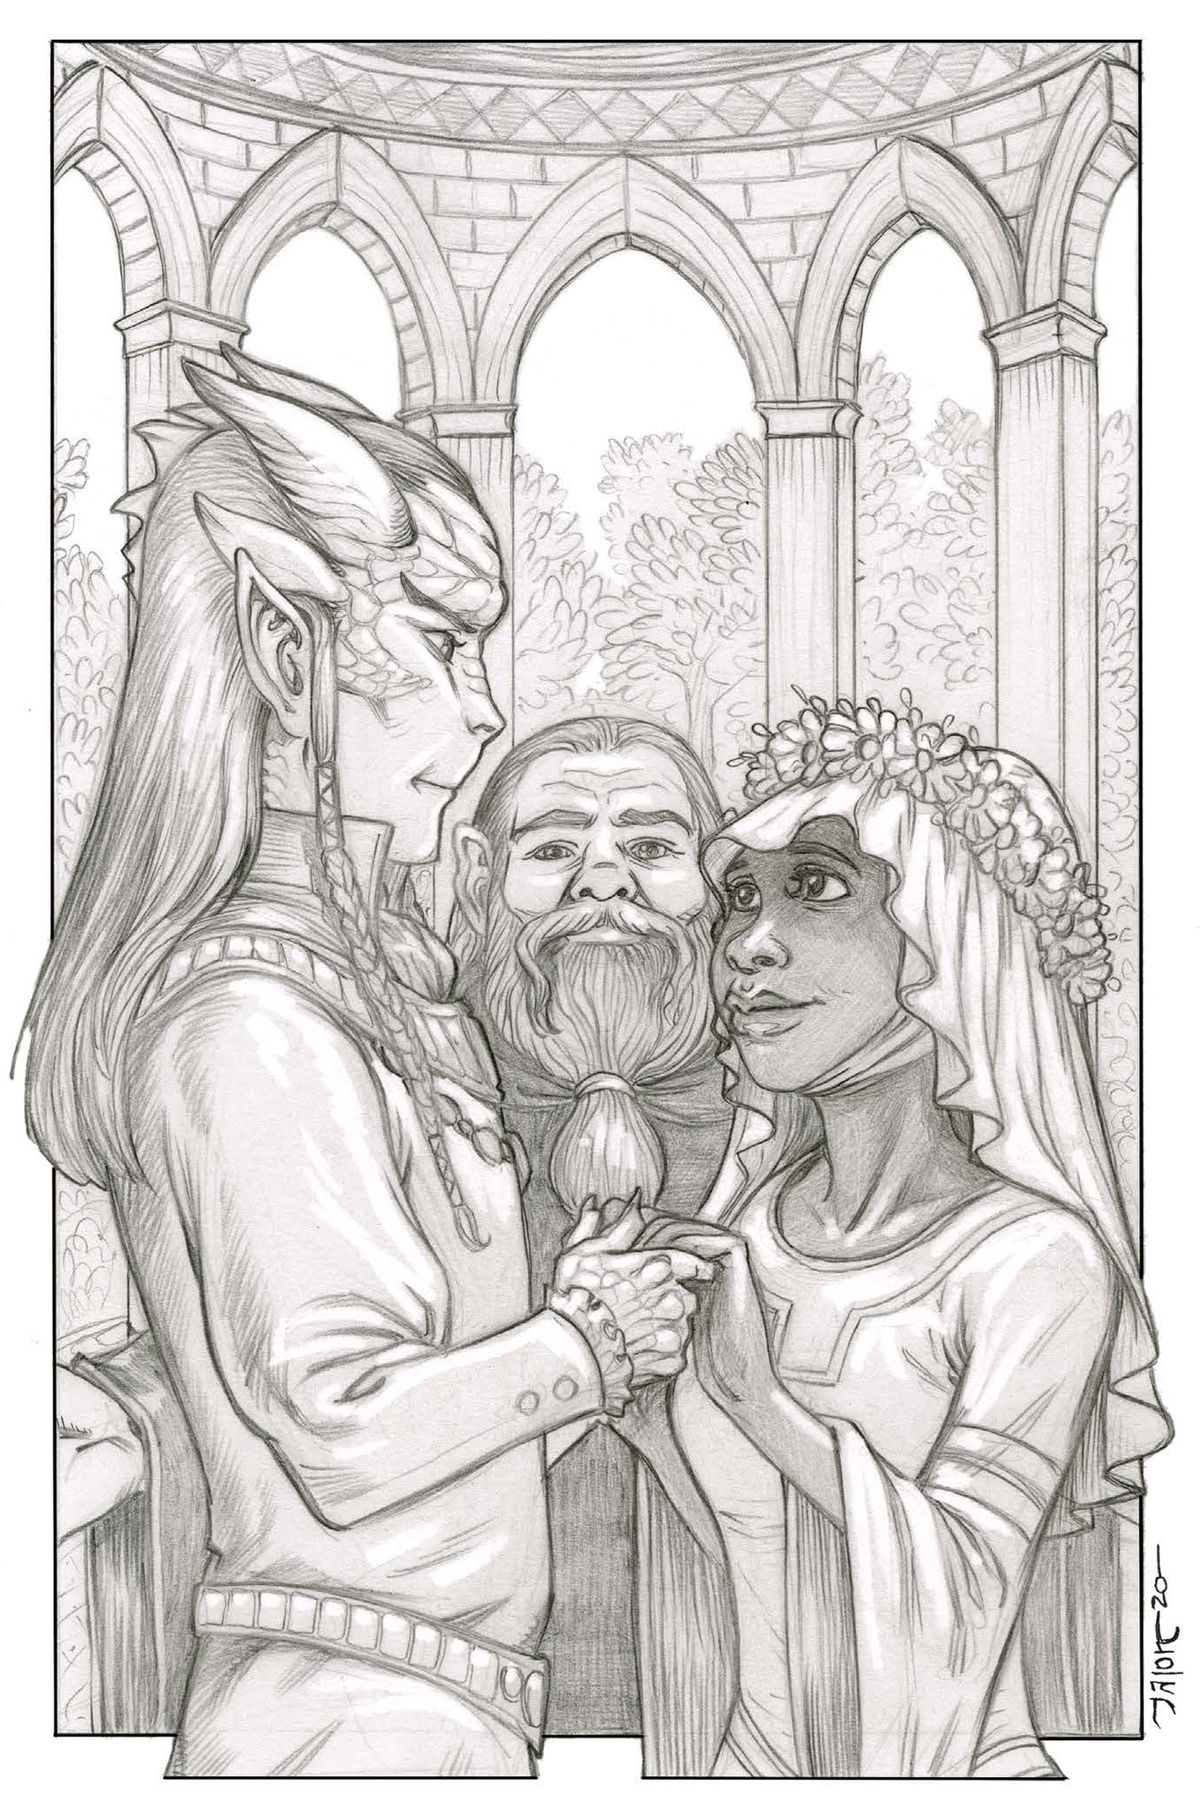 A marriage scene, showing a tiefling and a Black human, being married by a dwarf.